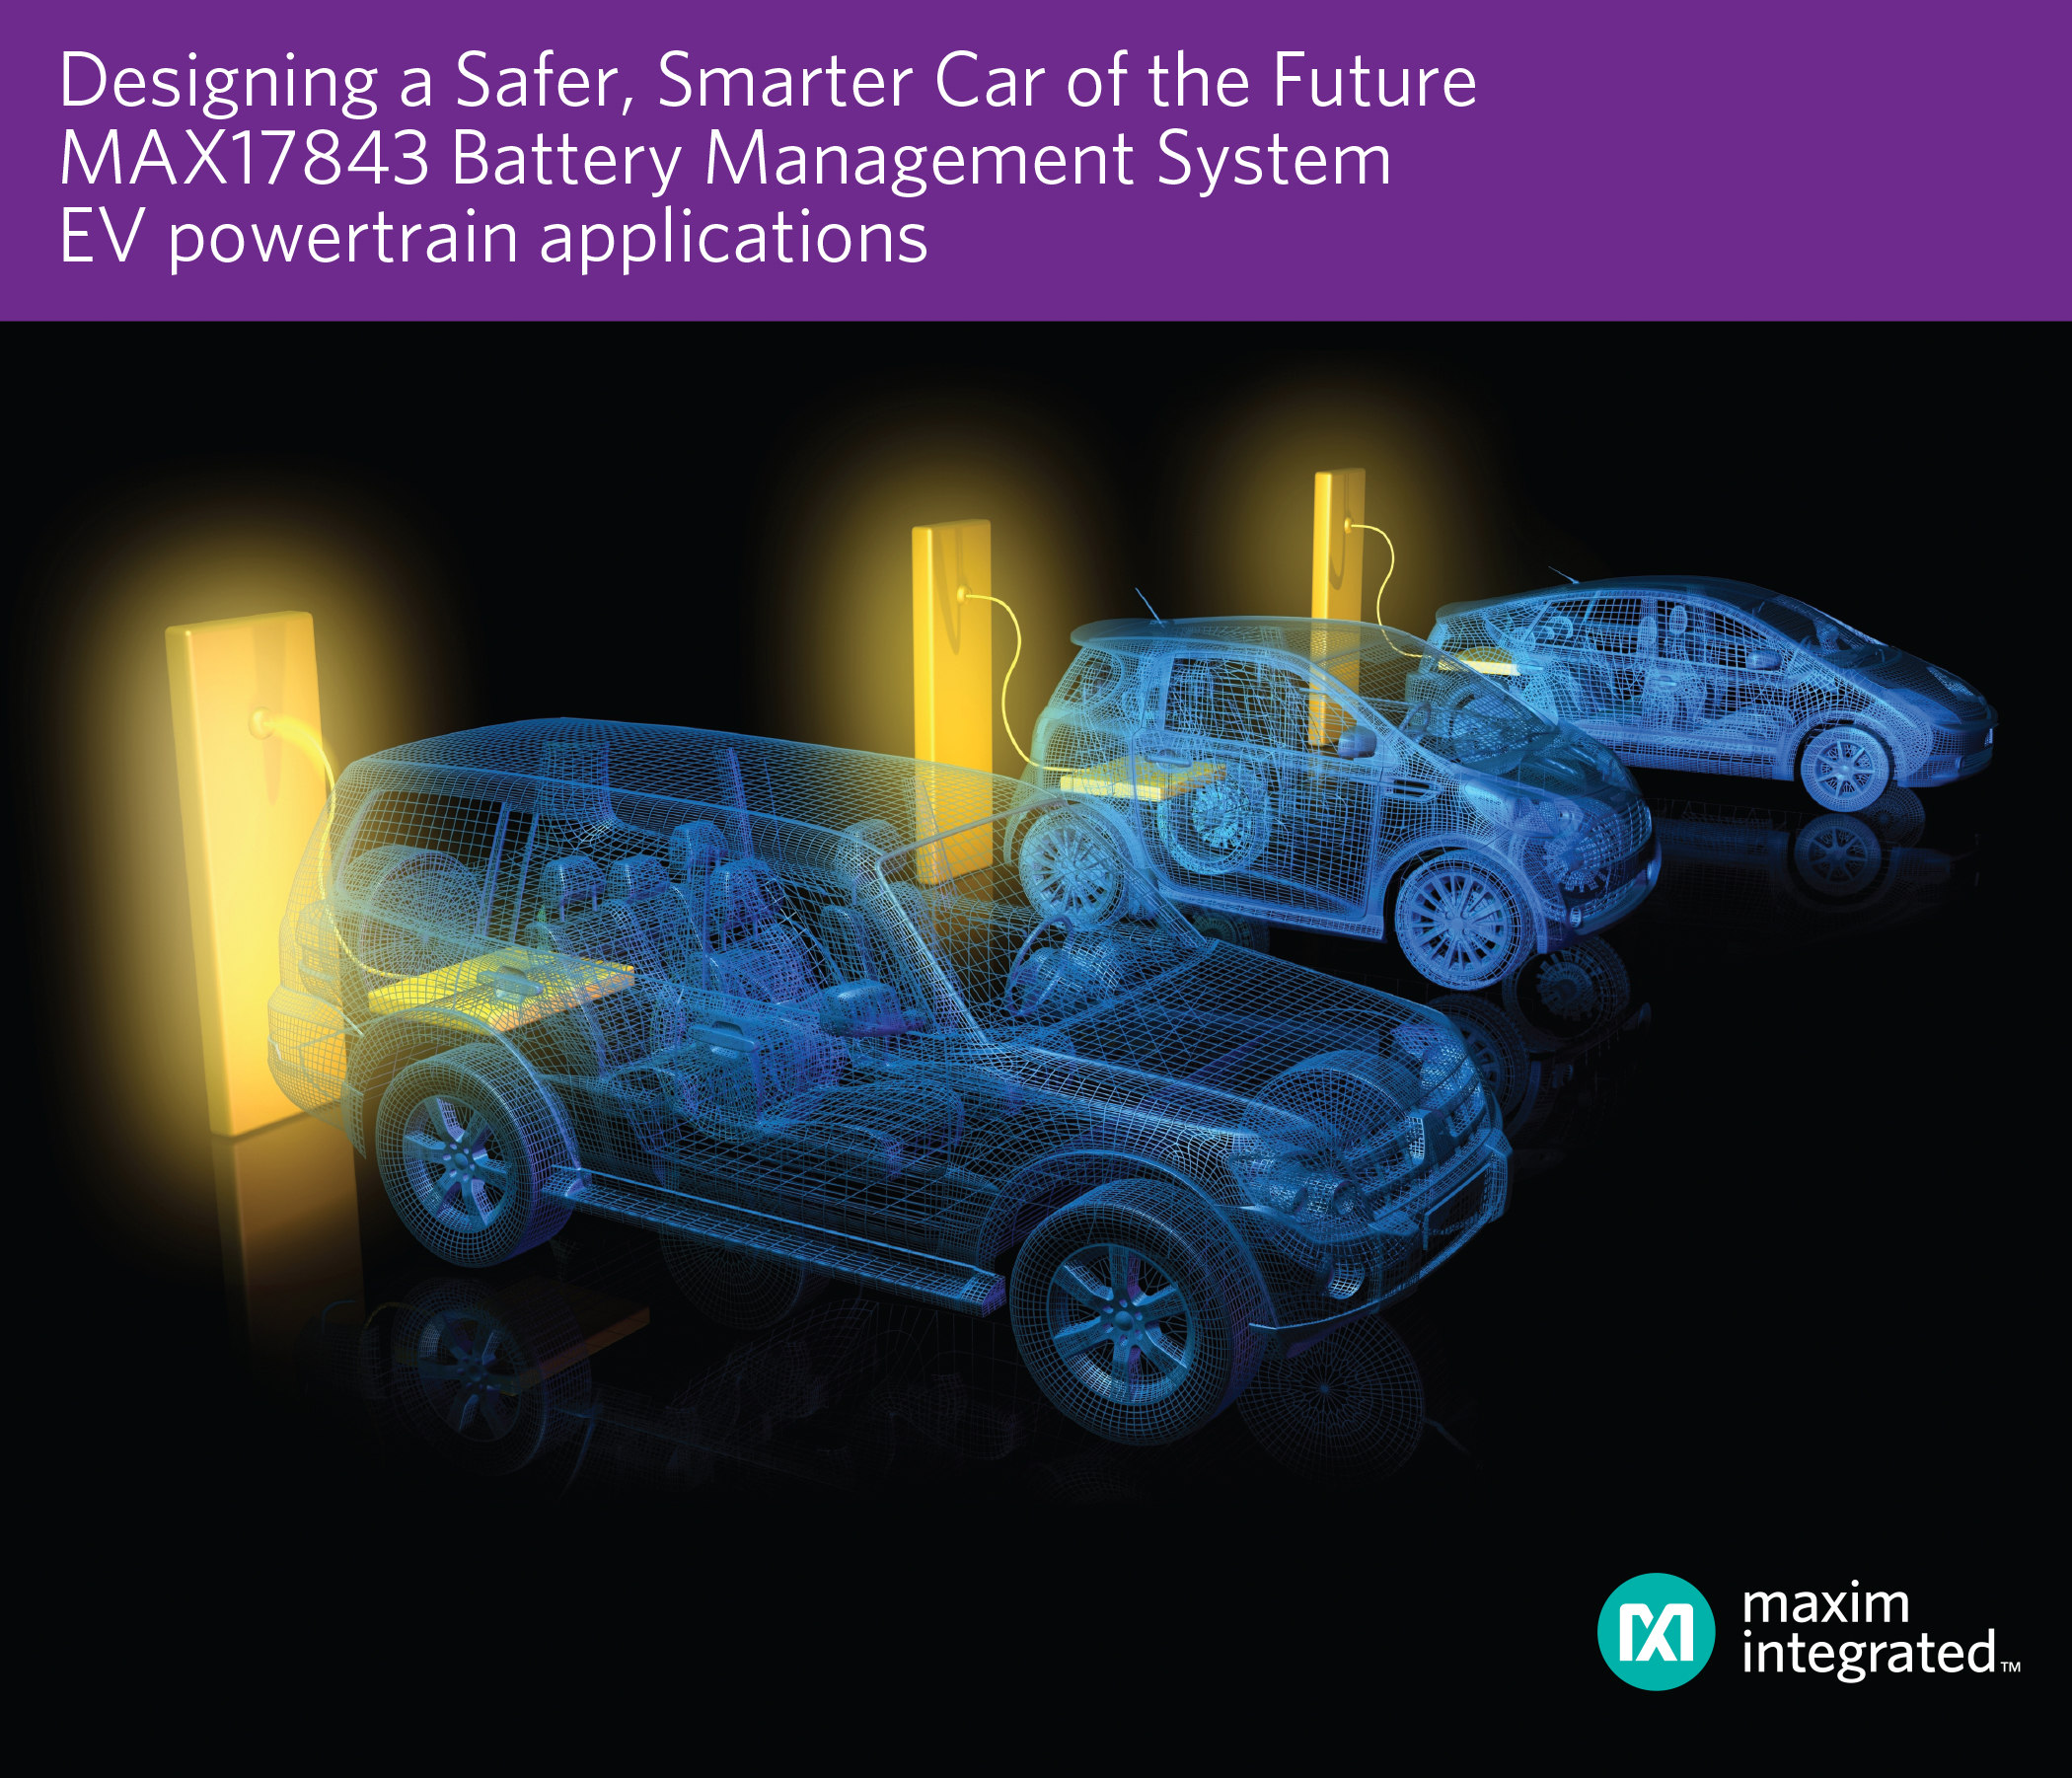 Advanced Battery Management System Enables a Safer, Smarter Car of the Future